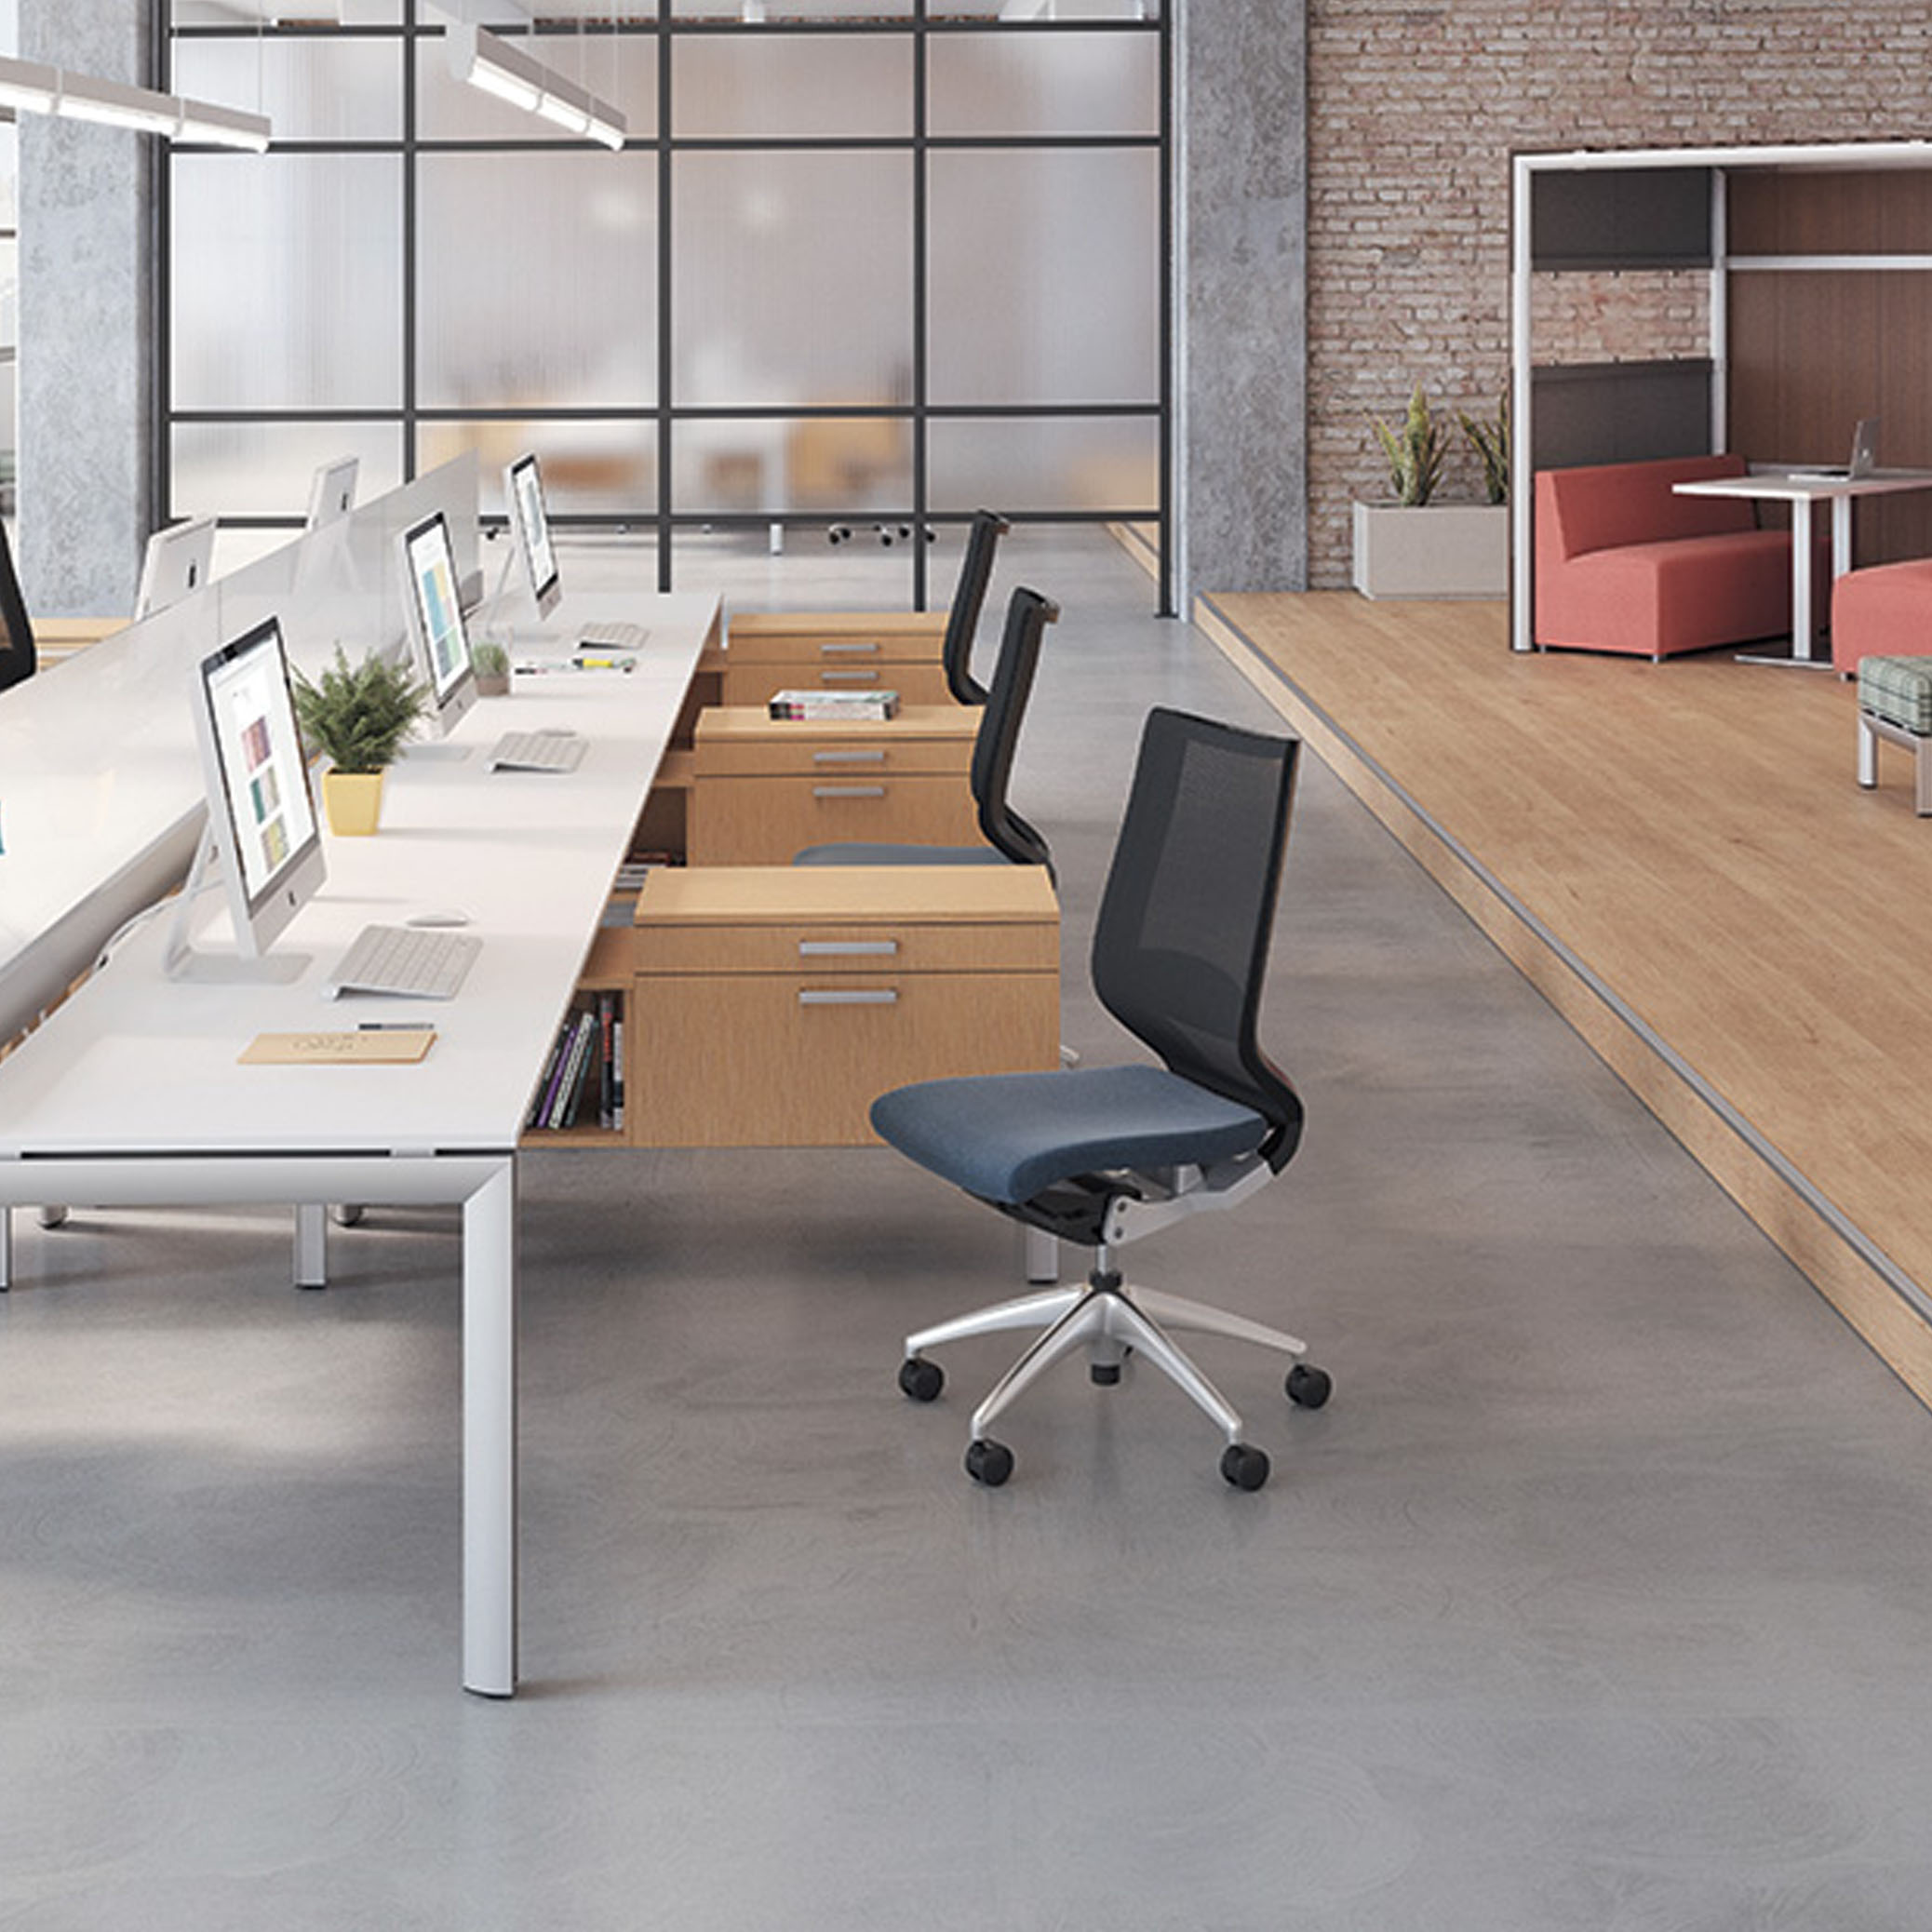 Rental training rooms in downers grove meeting room for Reasonably priced living room furniture